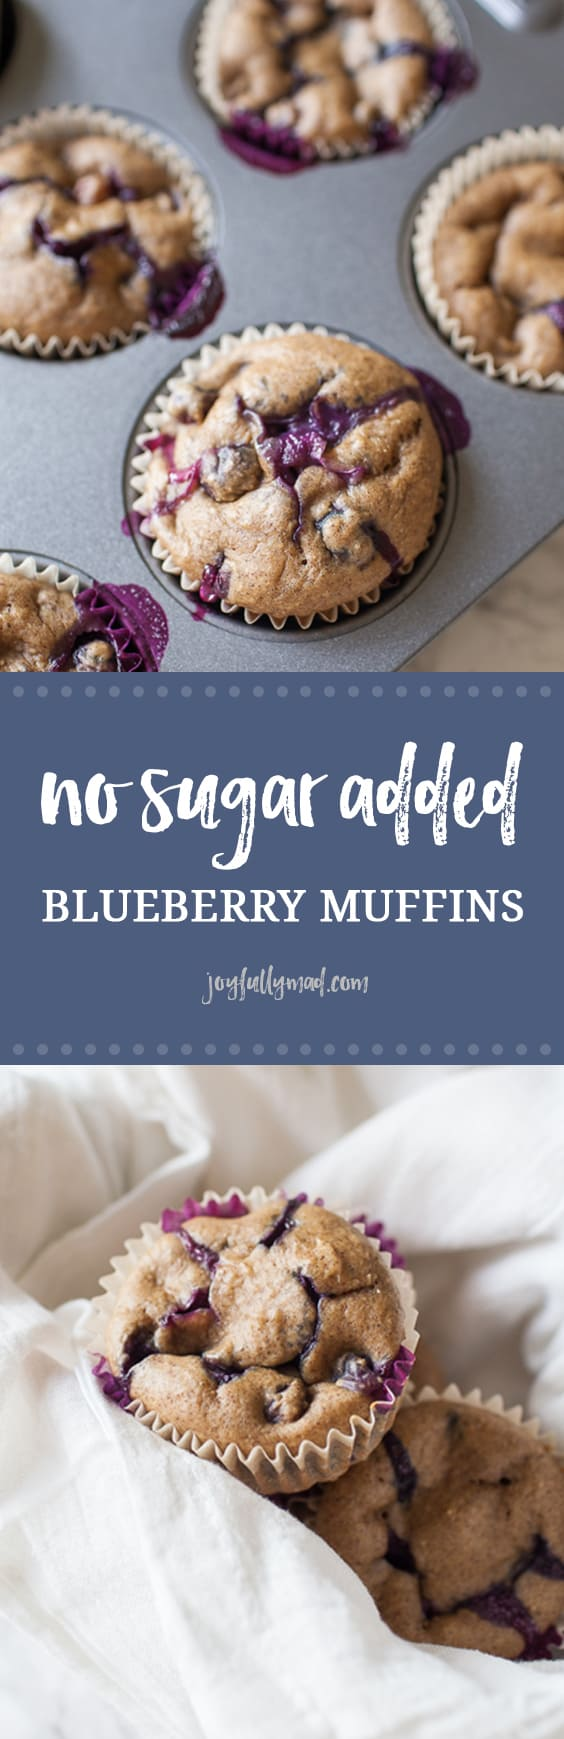 Looking for a healthy treat that can be served to adults and children alike? These healthy no sugar added blueberry muffins are the perfect treat because they are sweetened naturally with dates, instead of added sugar and can be quickly thrown together using just your blender! no sugar added | blender muffins | blueberry muffins | toddler snacks | toddler muffins | easy blueberry muffin recipe | no sugar added muffins | healthy muffins | easy muffins recipes